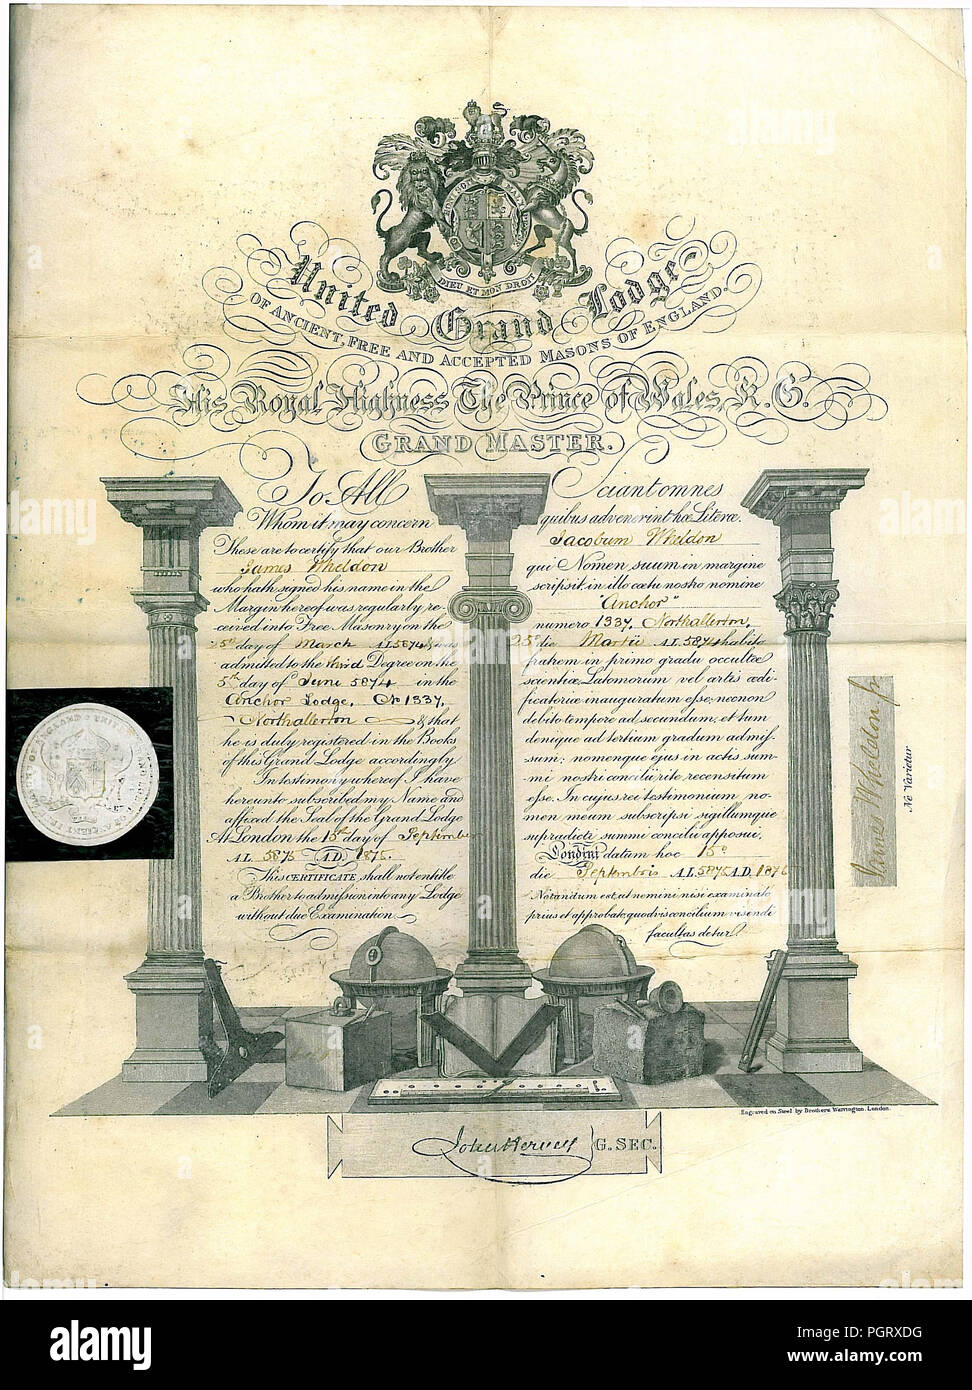 A Free Mason certificate admitting a James Wheldon as a third degree mason in to the lodge at Northallerton Yorkshire dated 1875 - Stock Image